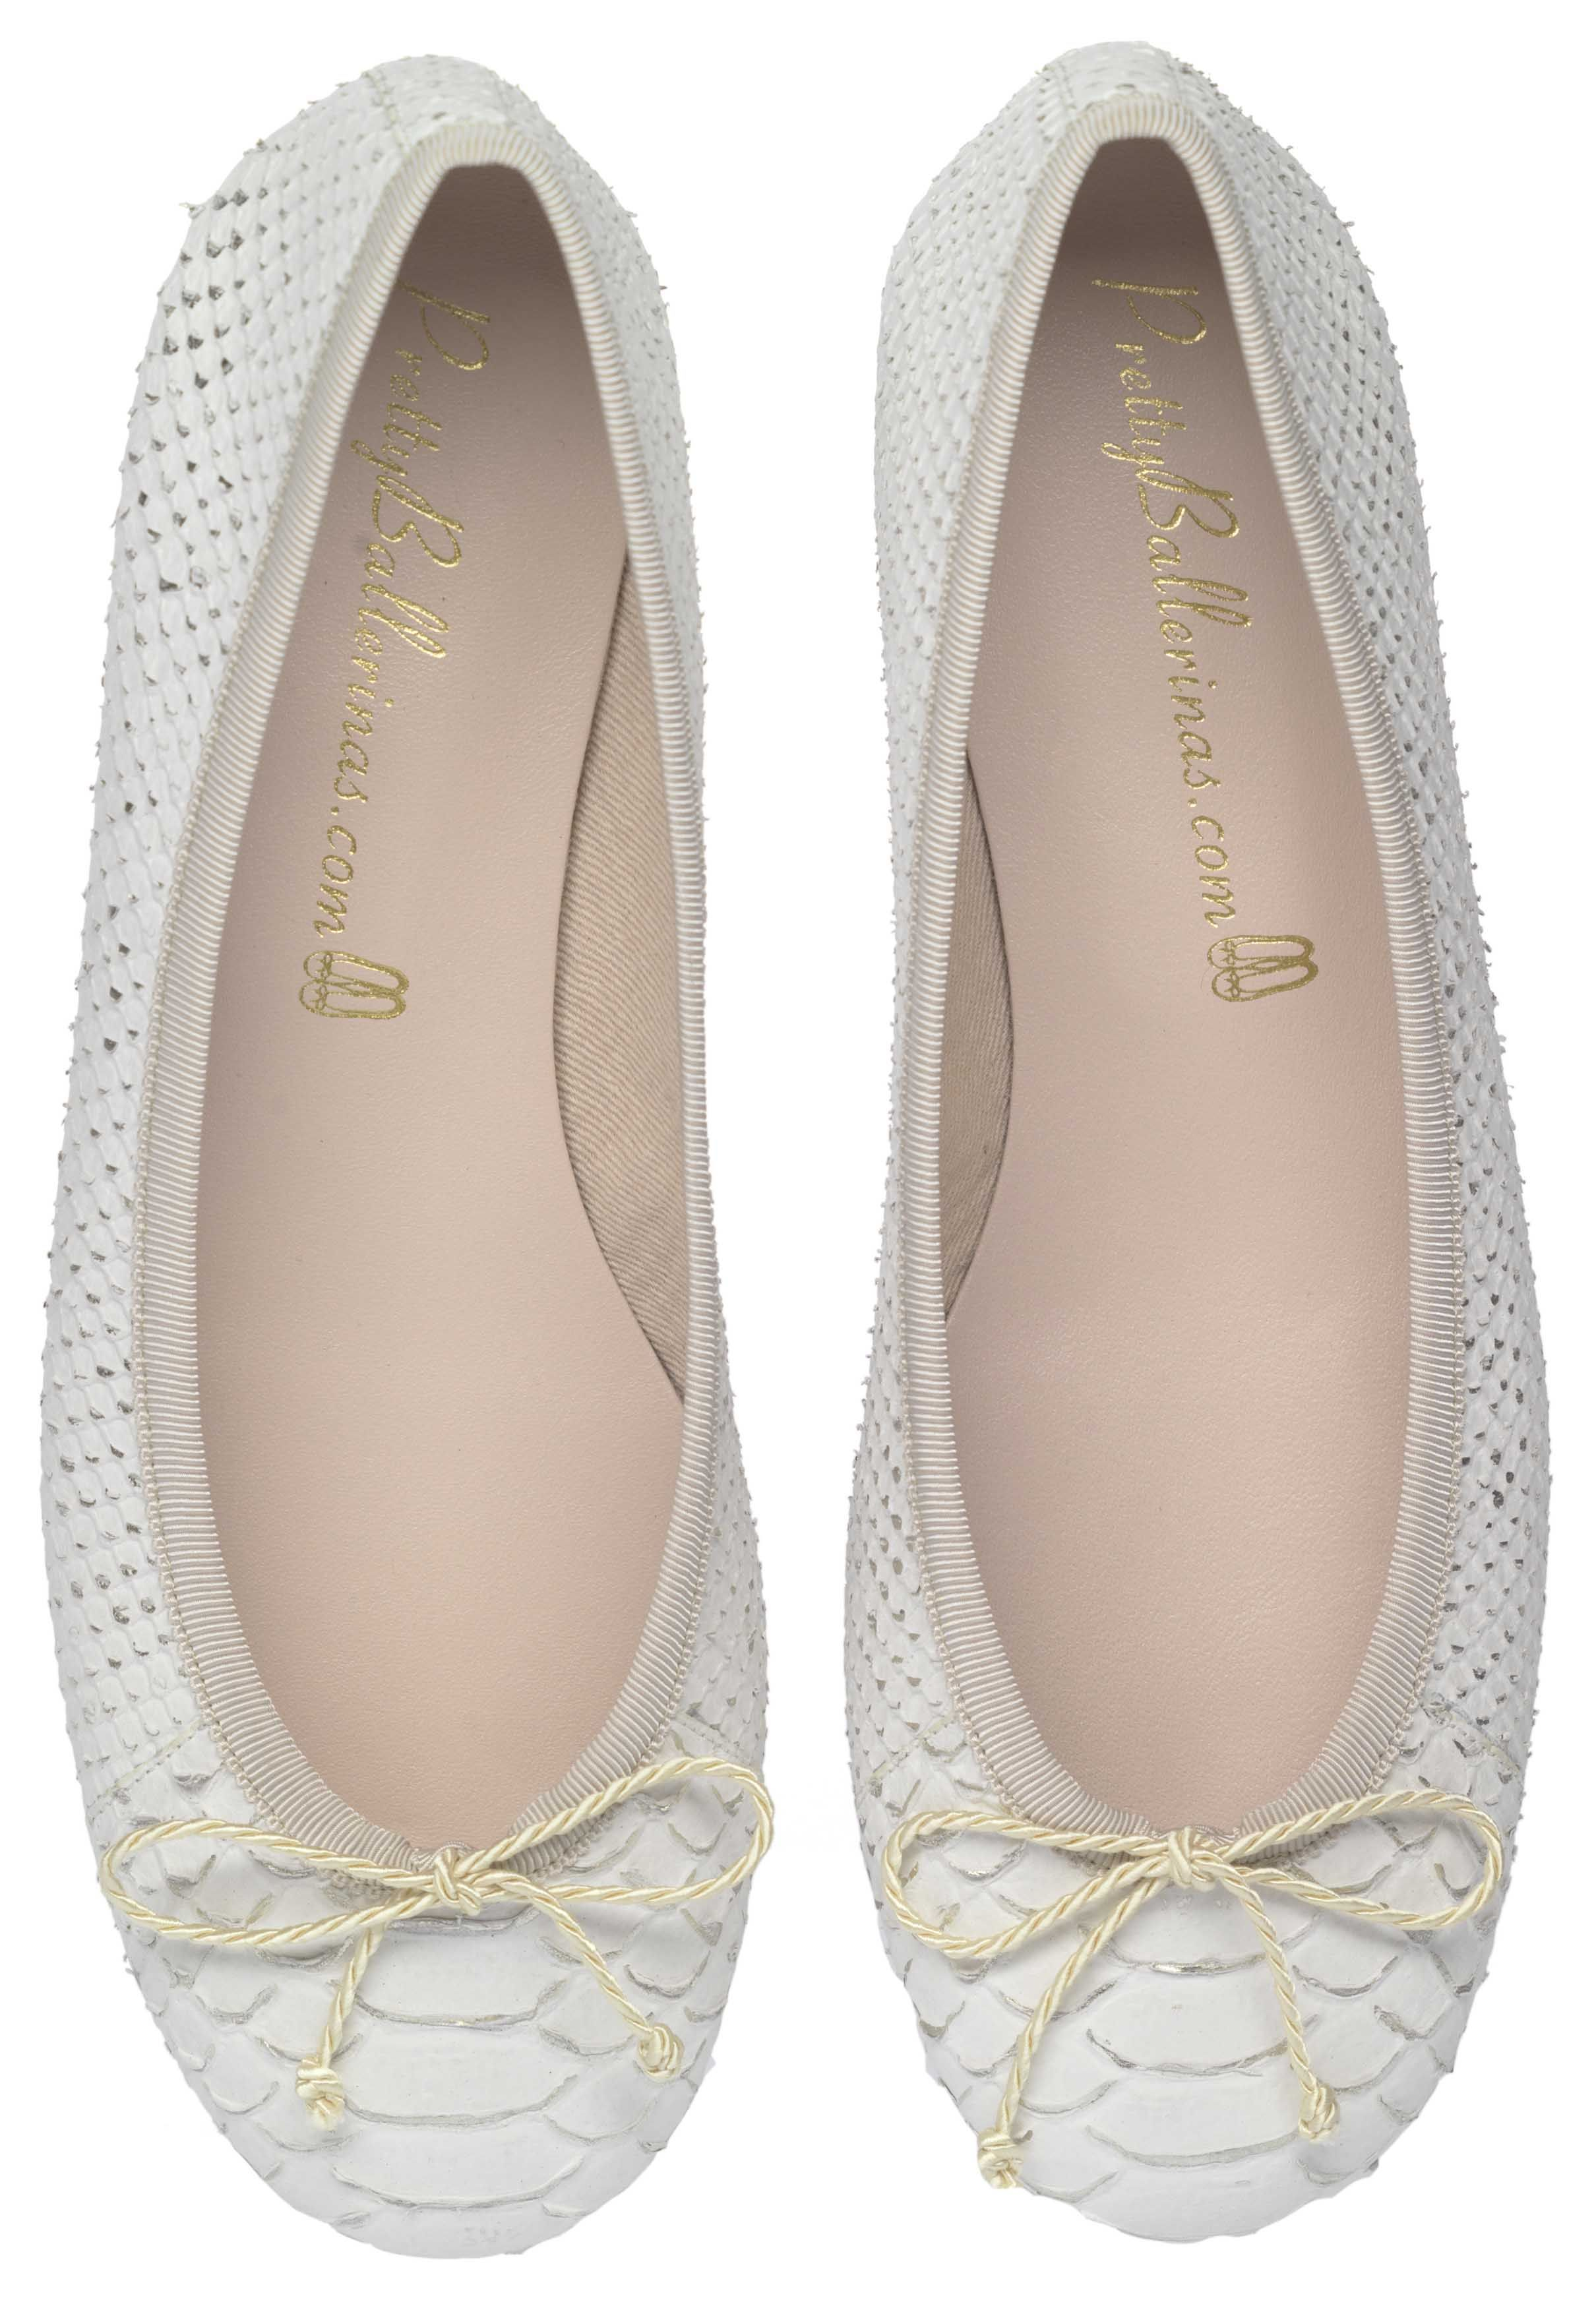 41f7493fa Celebrity favourite brand of ballerinas, ballet flats, ballet pumps and  other quality flat footwear made by hand since 1918.